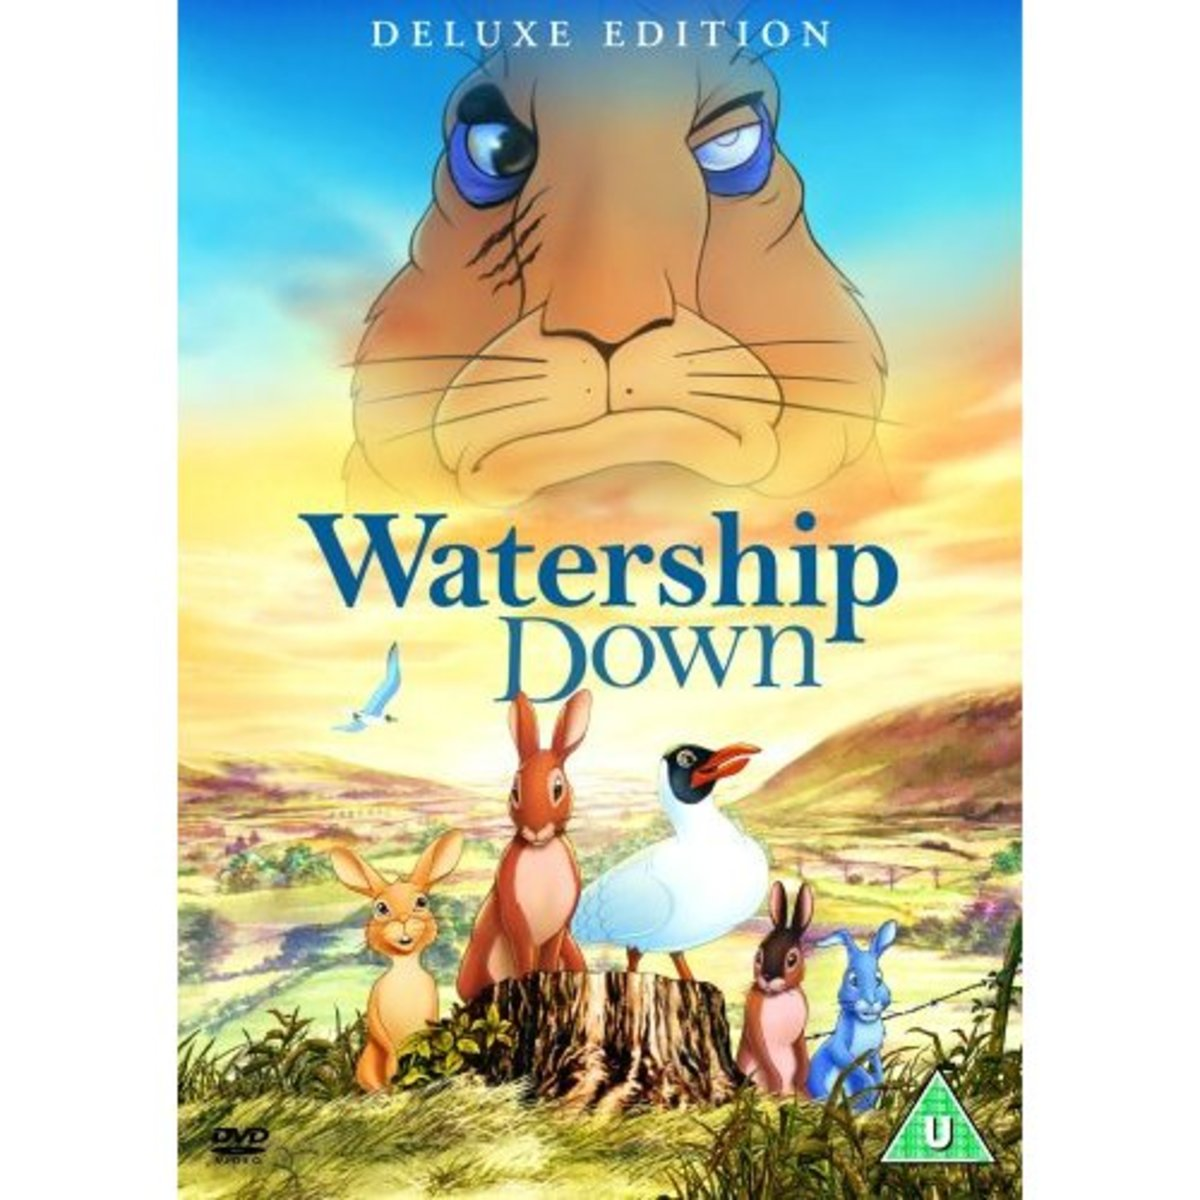 How My Thinking Was Shaped by Watership Down (Book and Movie)